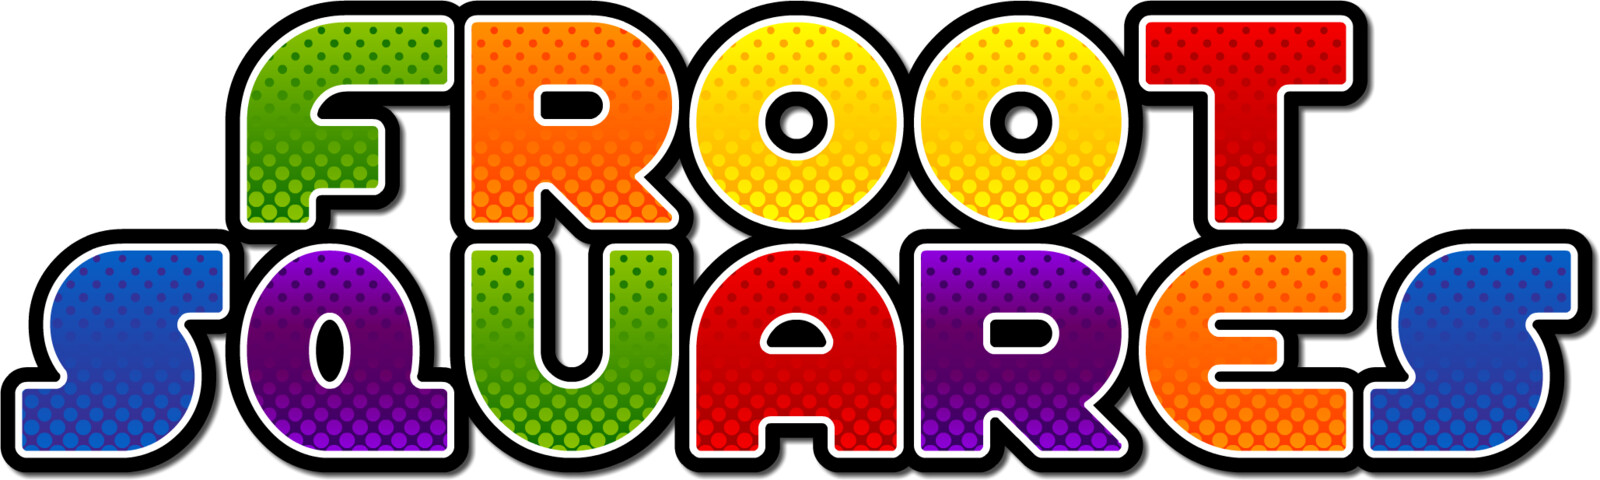 Froot Squares Logo 2 Line